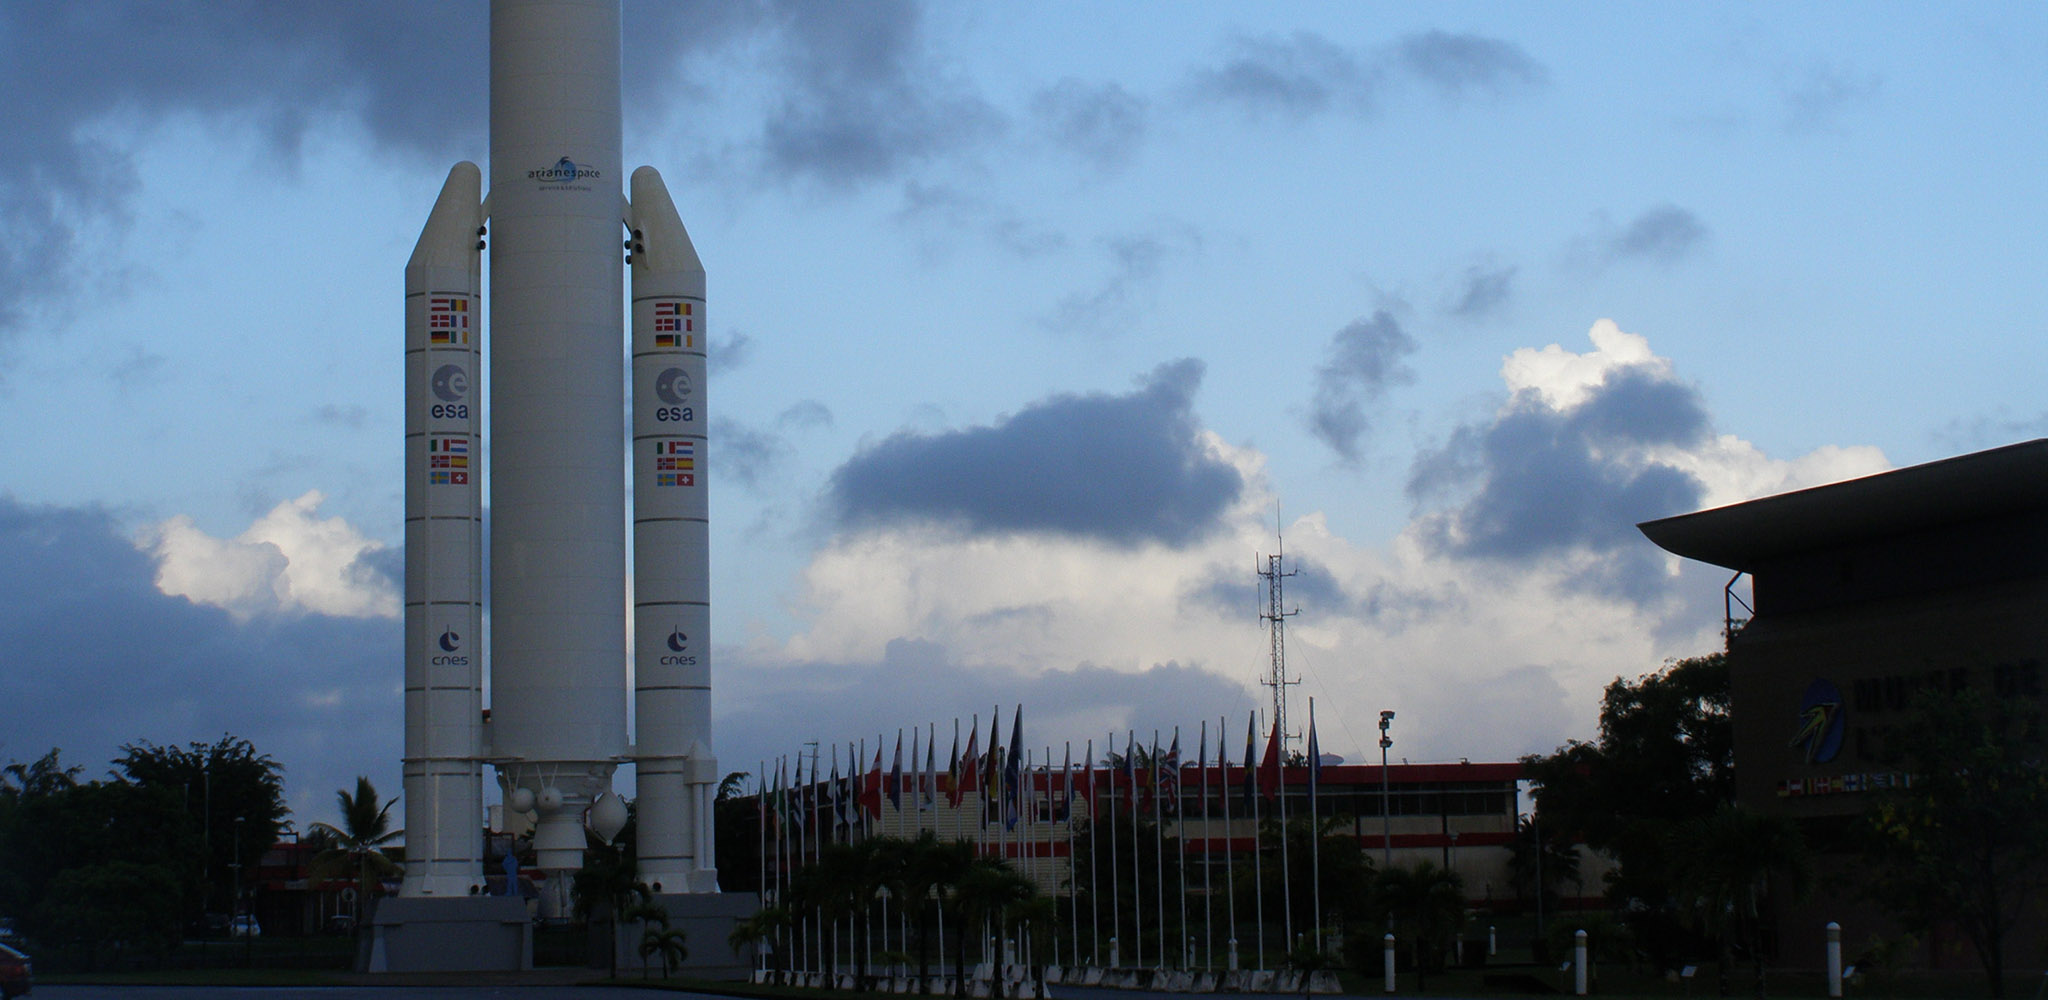 Ariane 6, Guiana space center